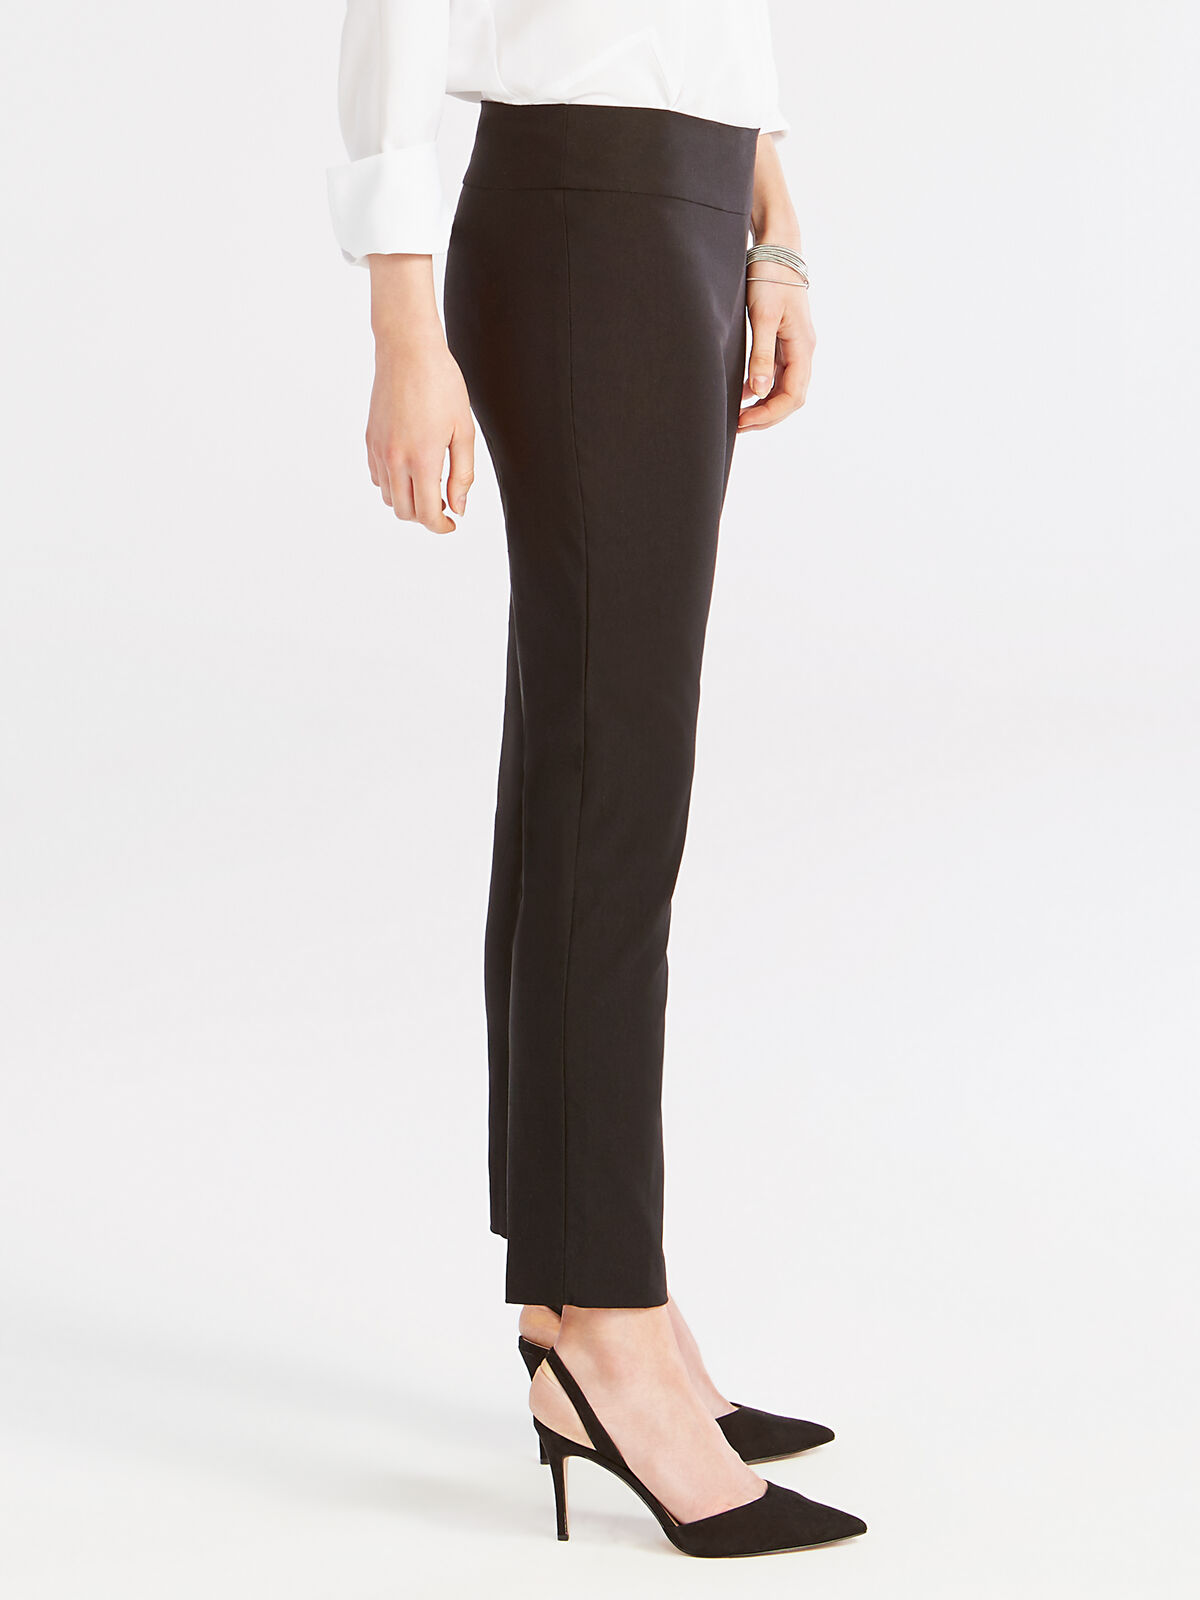 Ankle Wonderstretch Pant